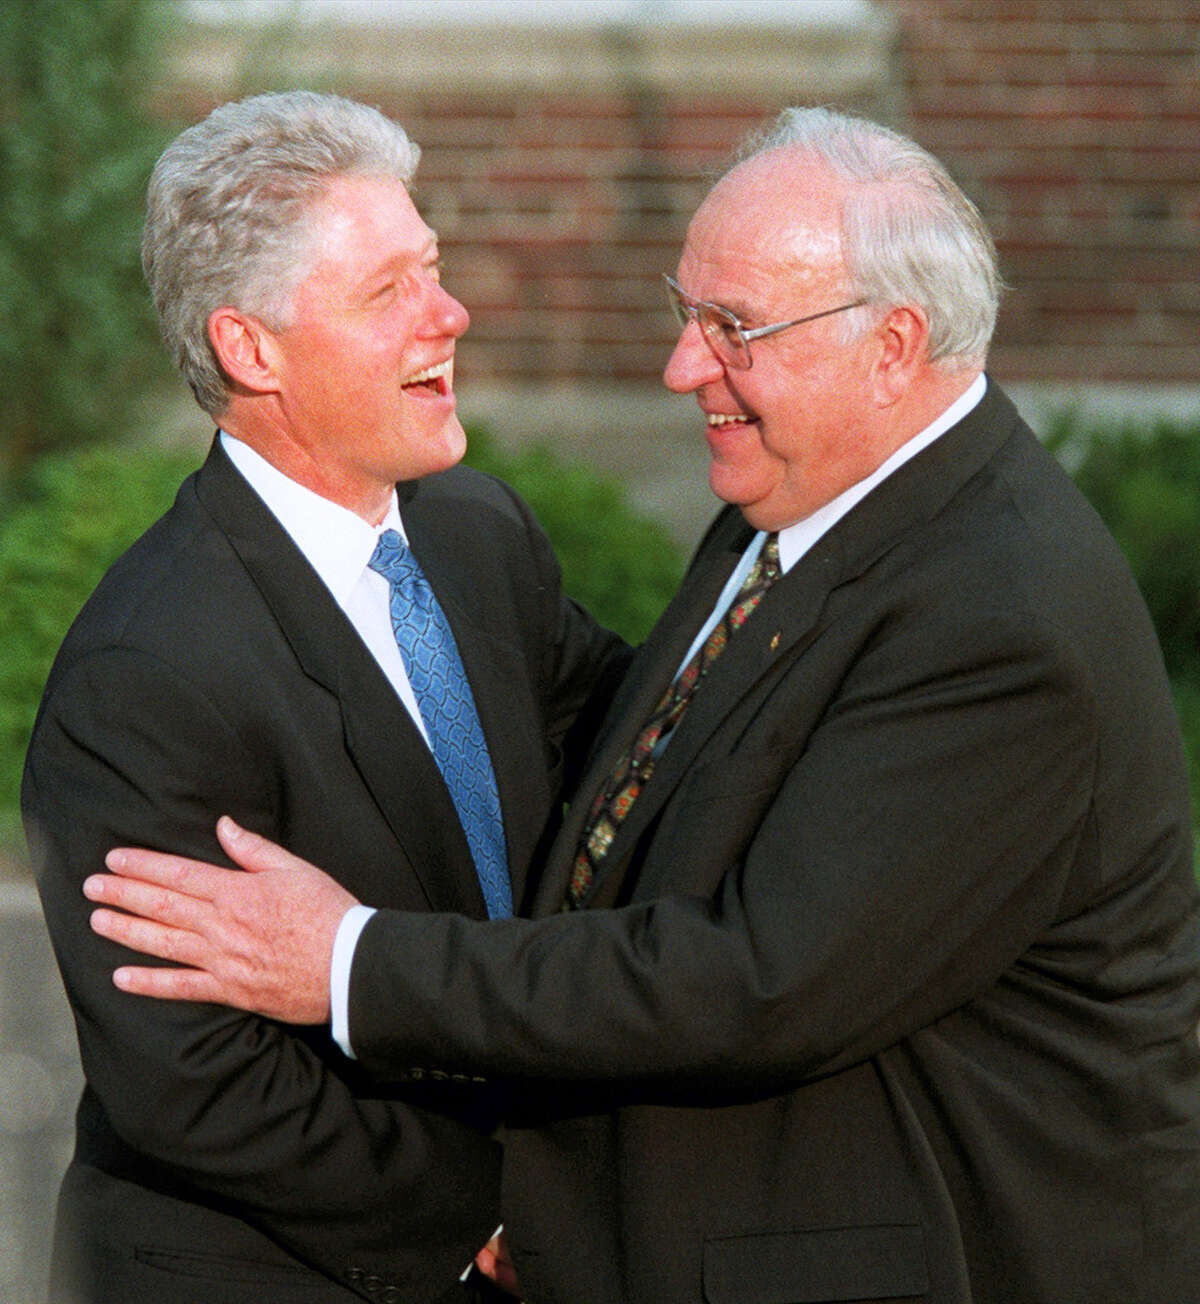 The June 20, 1997 file photo shows President Clinton welcomes German Chancellor Helmut Kohl prior to a formal dinner for the leading dignitaries of the Summit of the Eight at the University of Denver's Phipps House in Denver.